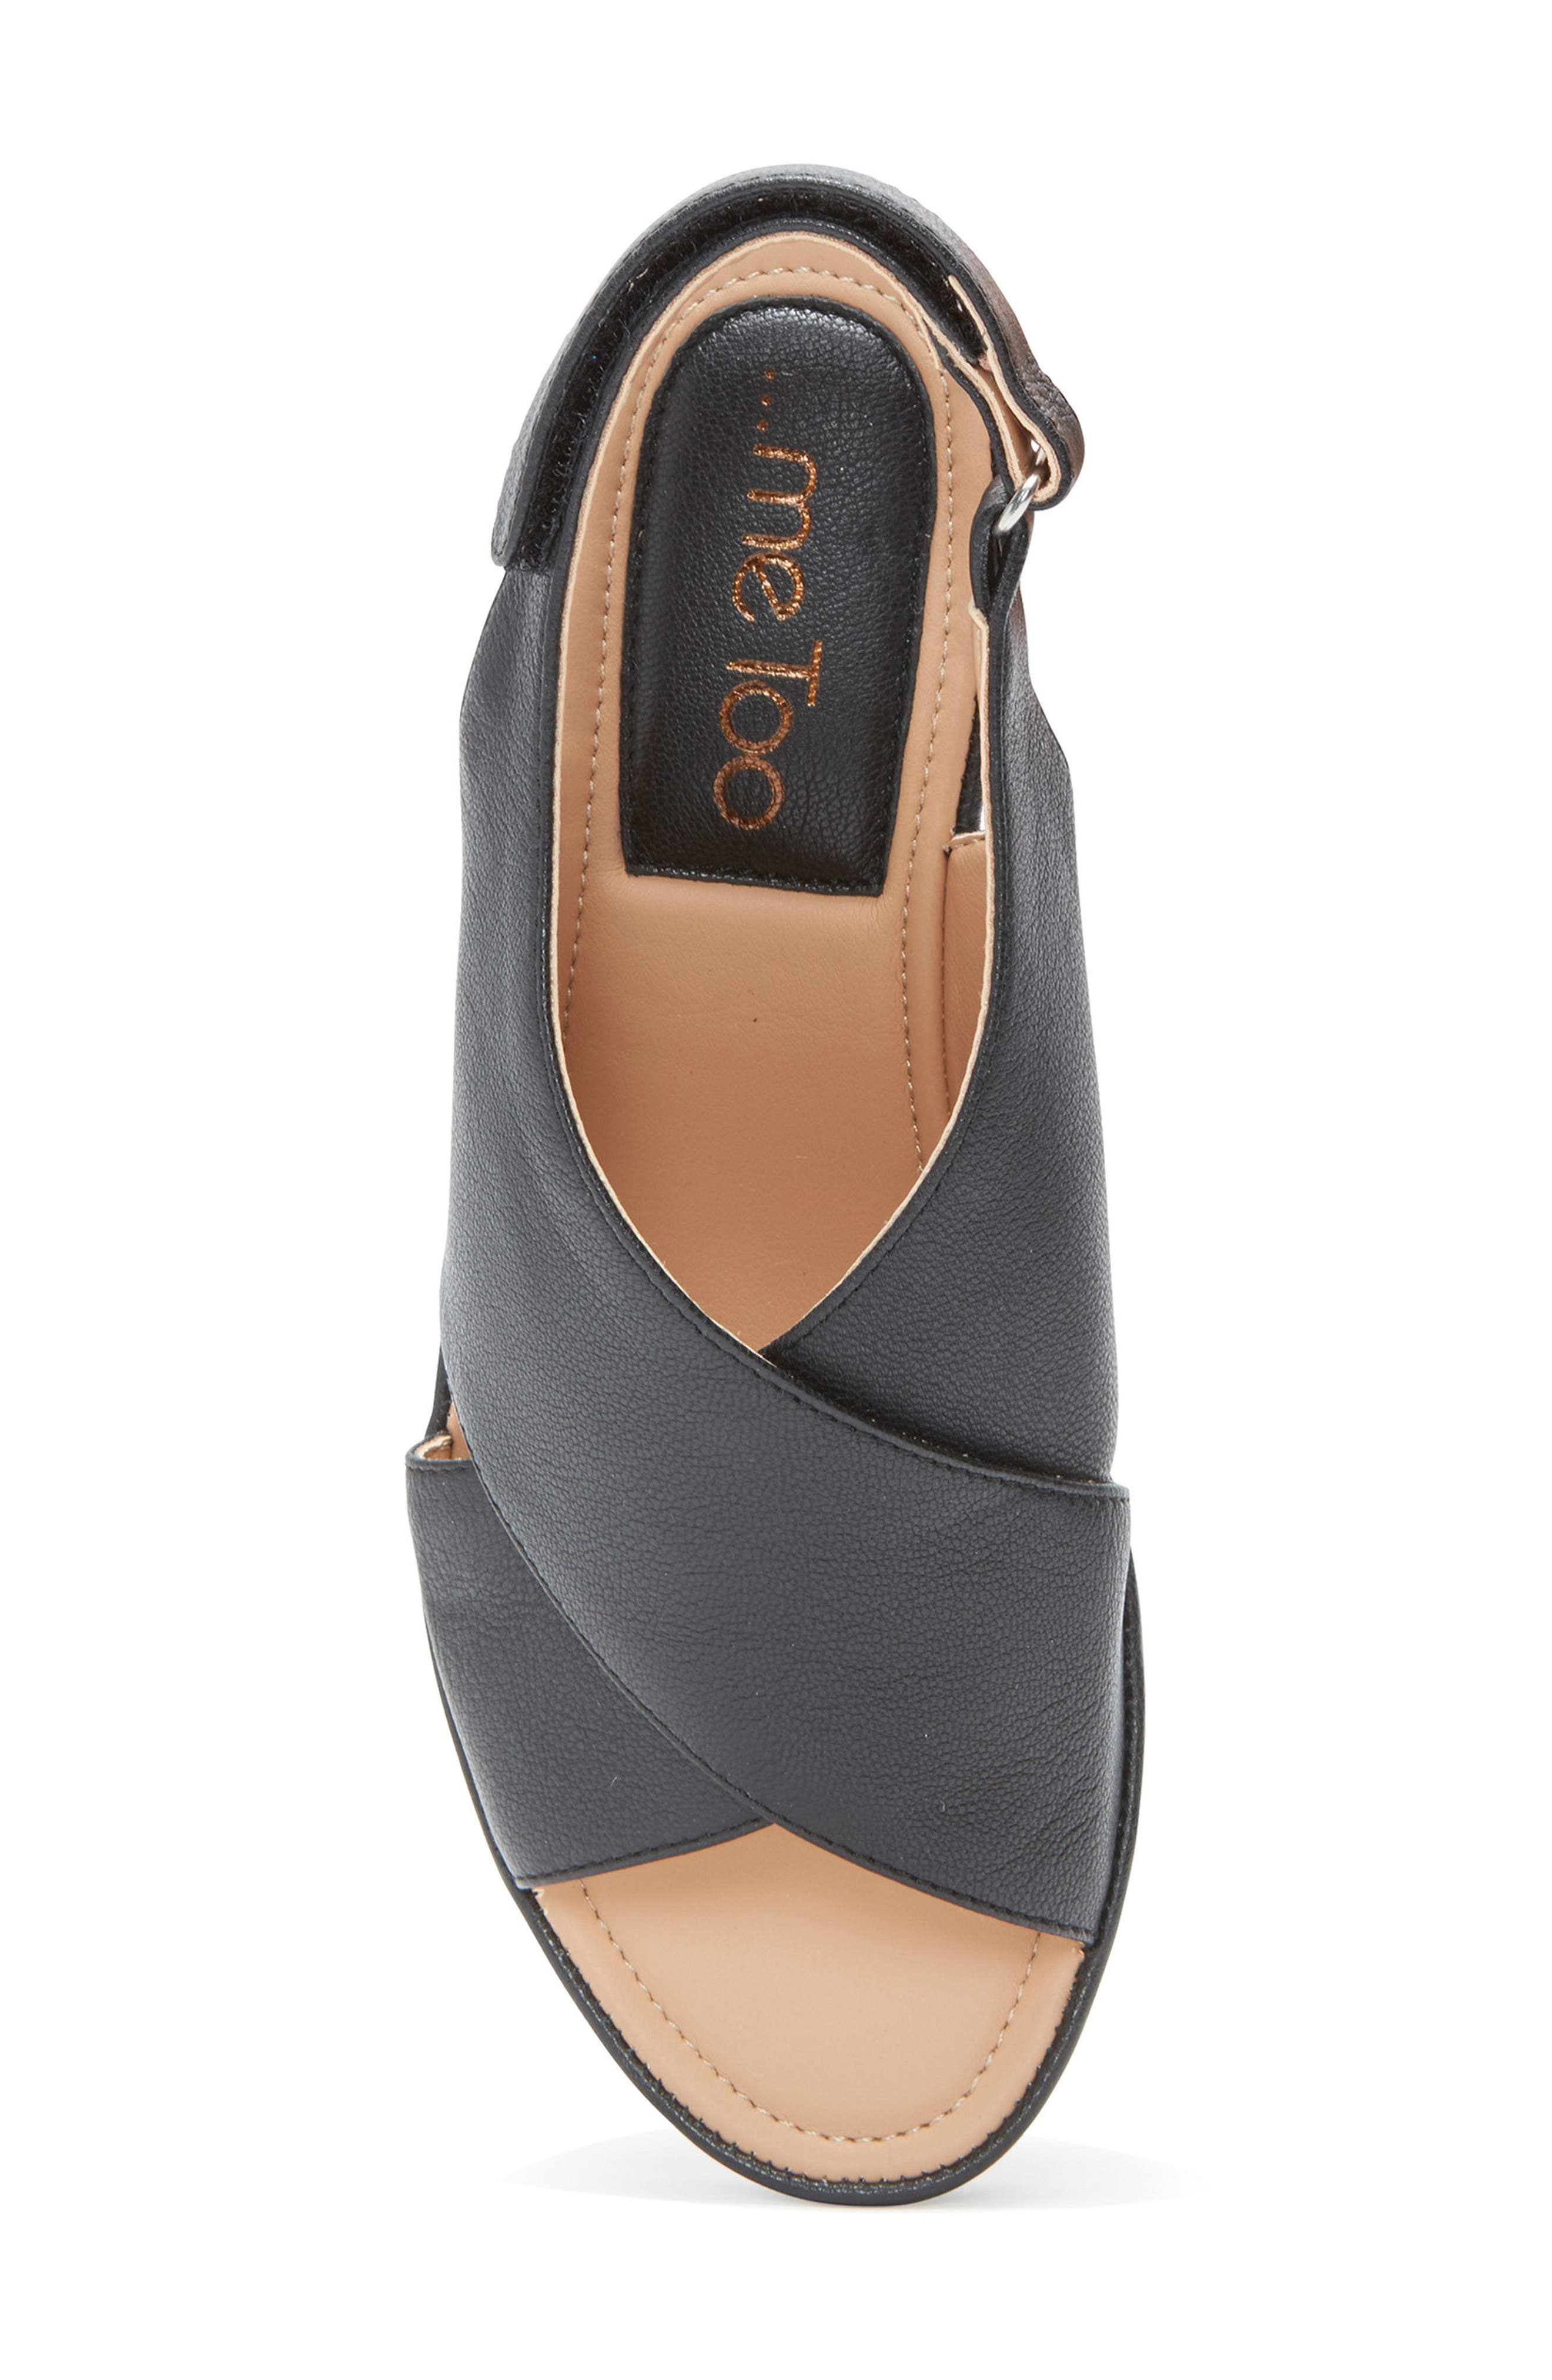 ME TOO, Arena Wedge Sandal, Alternate thumbnail 5, color, BLACK LEATHER